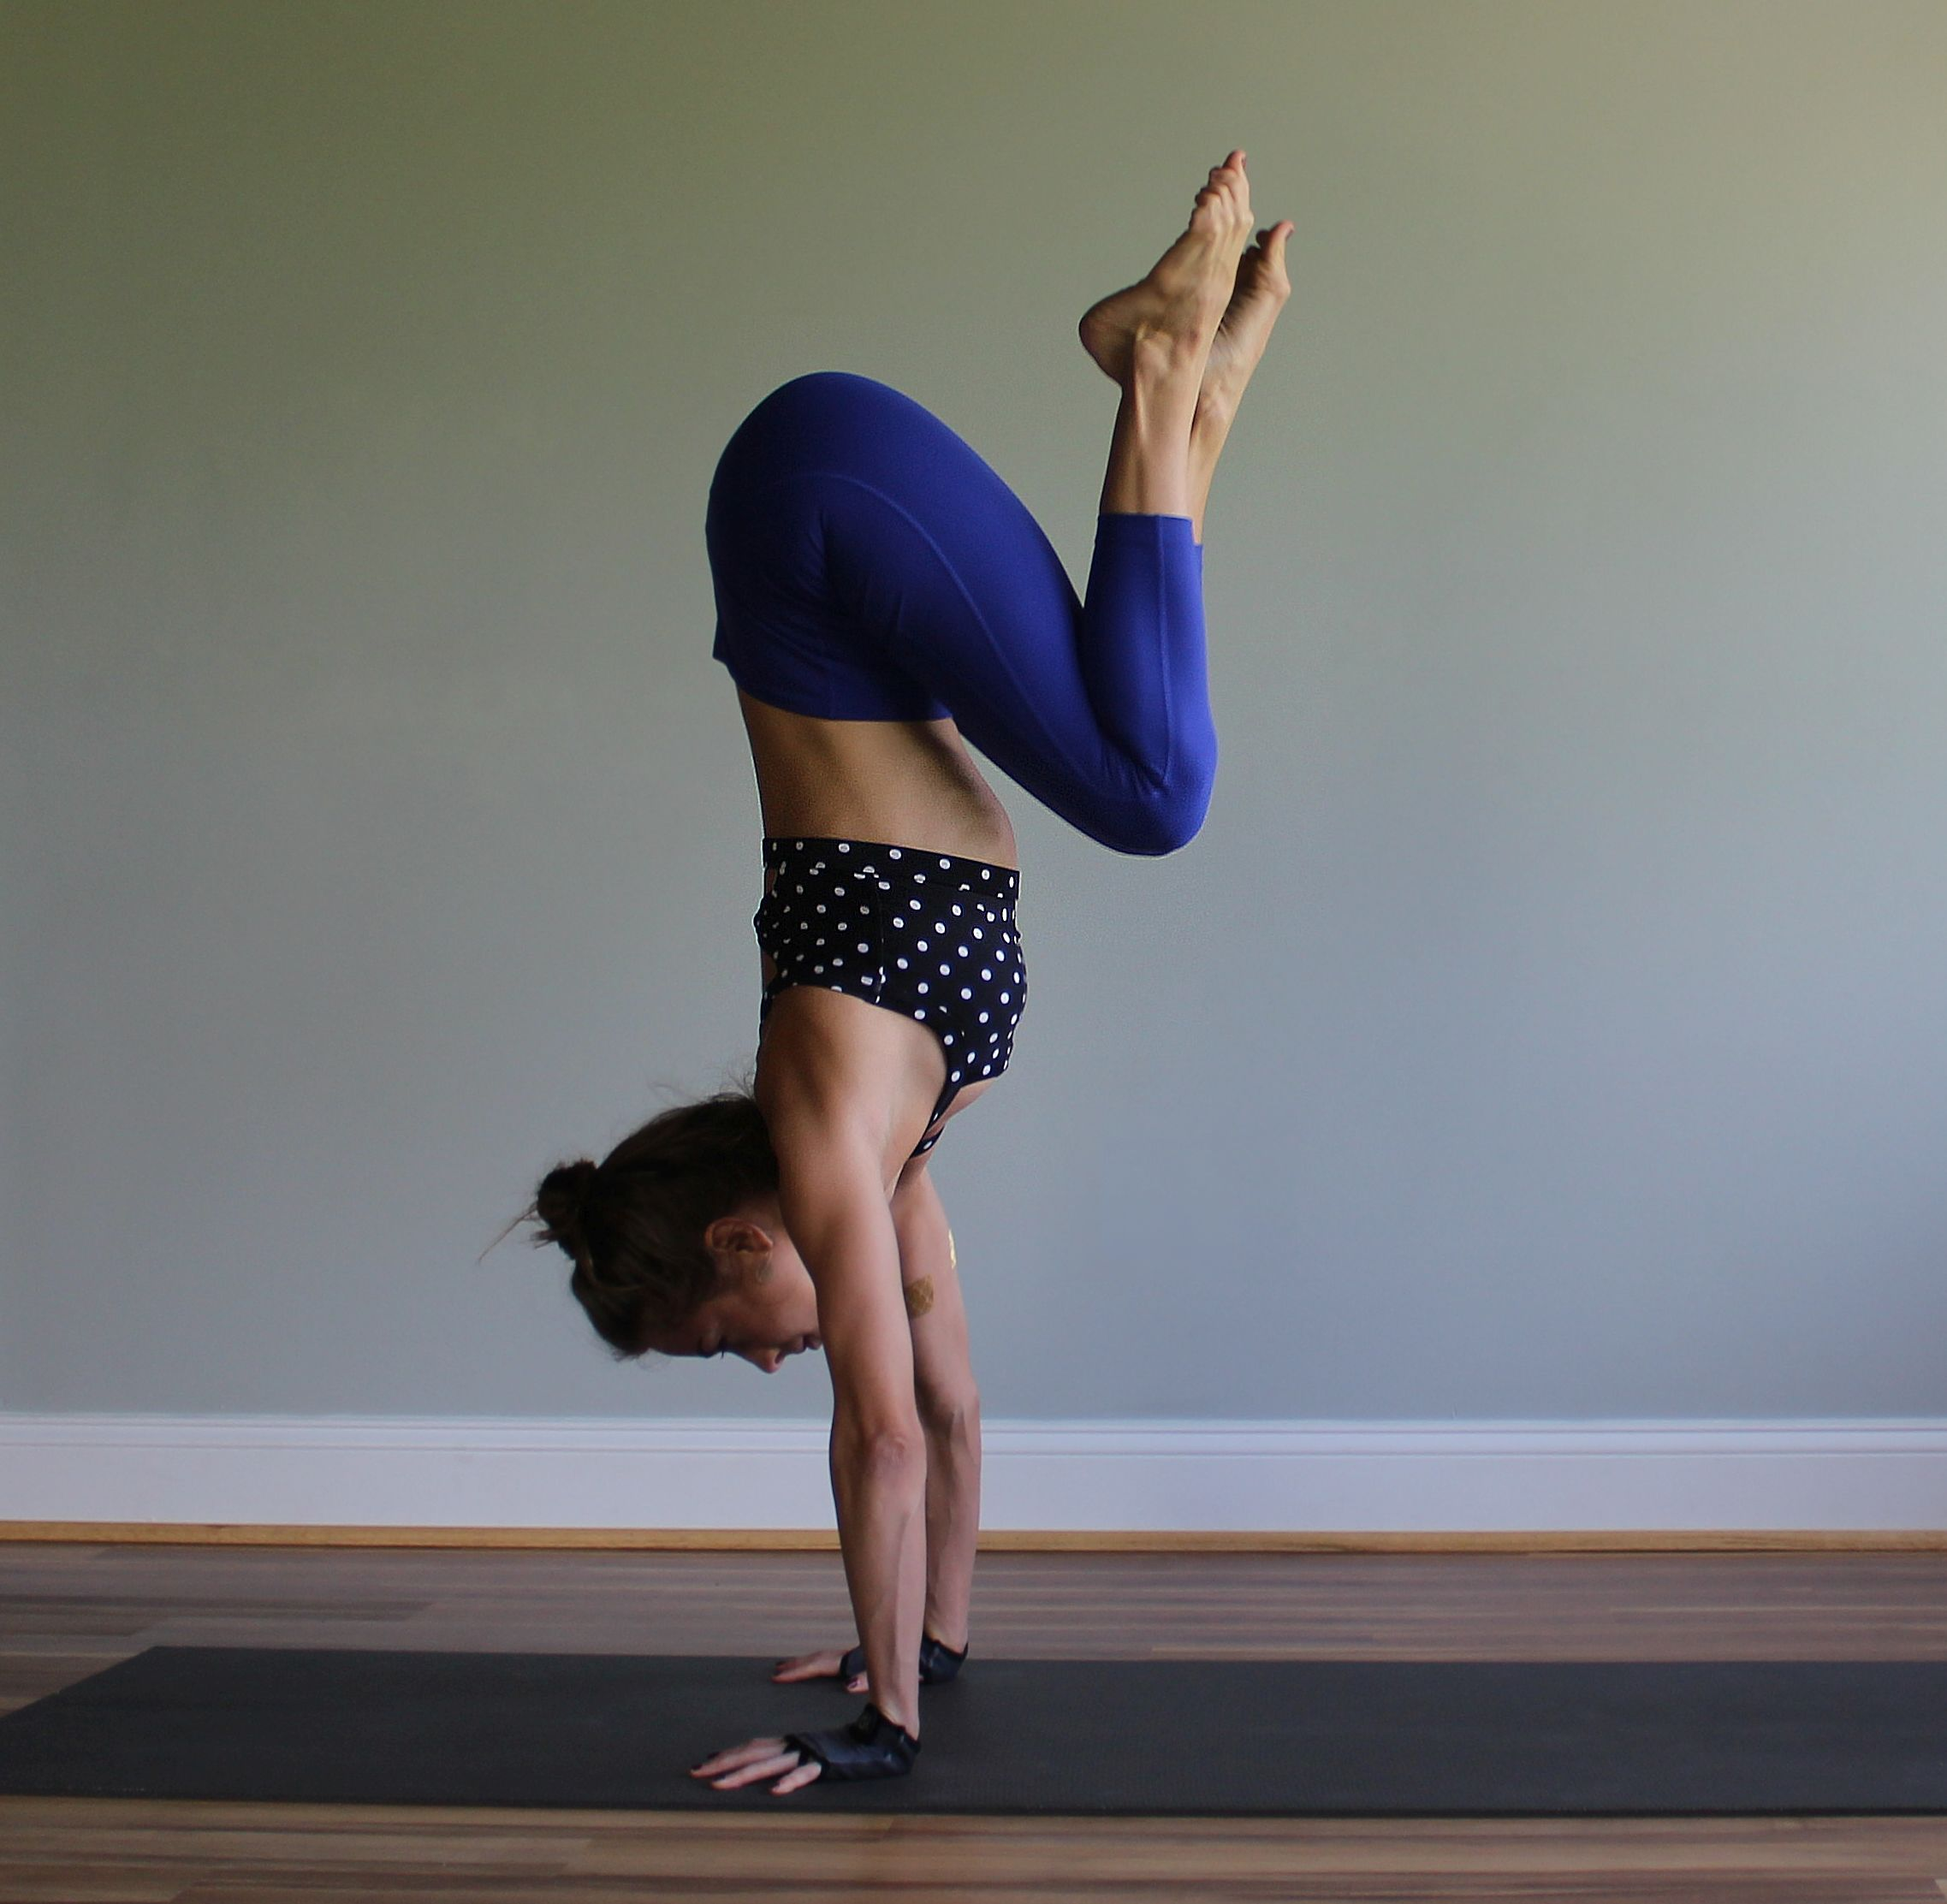 Four Poses to Improve Your Handstand - KiraGrace